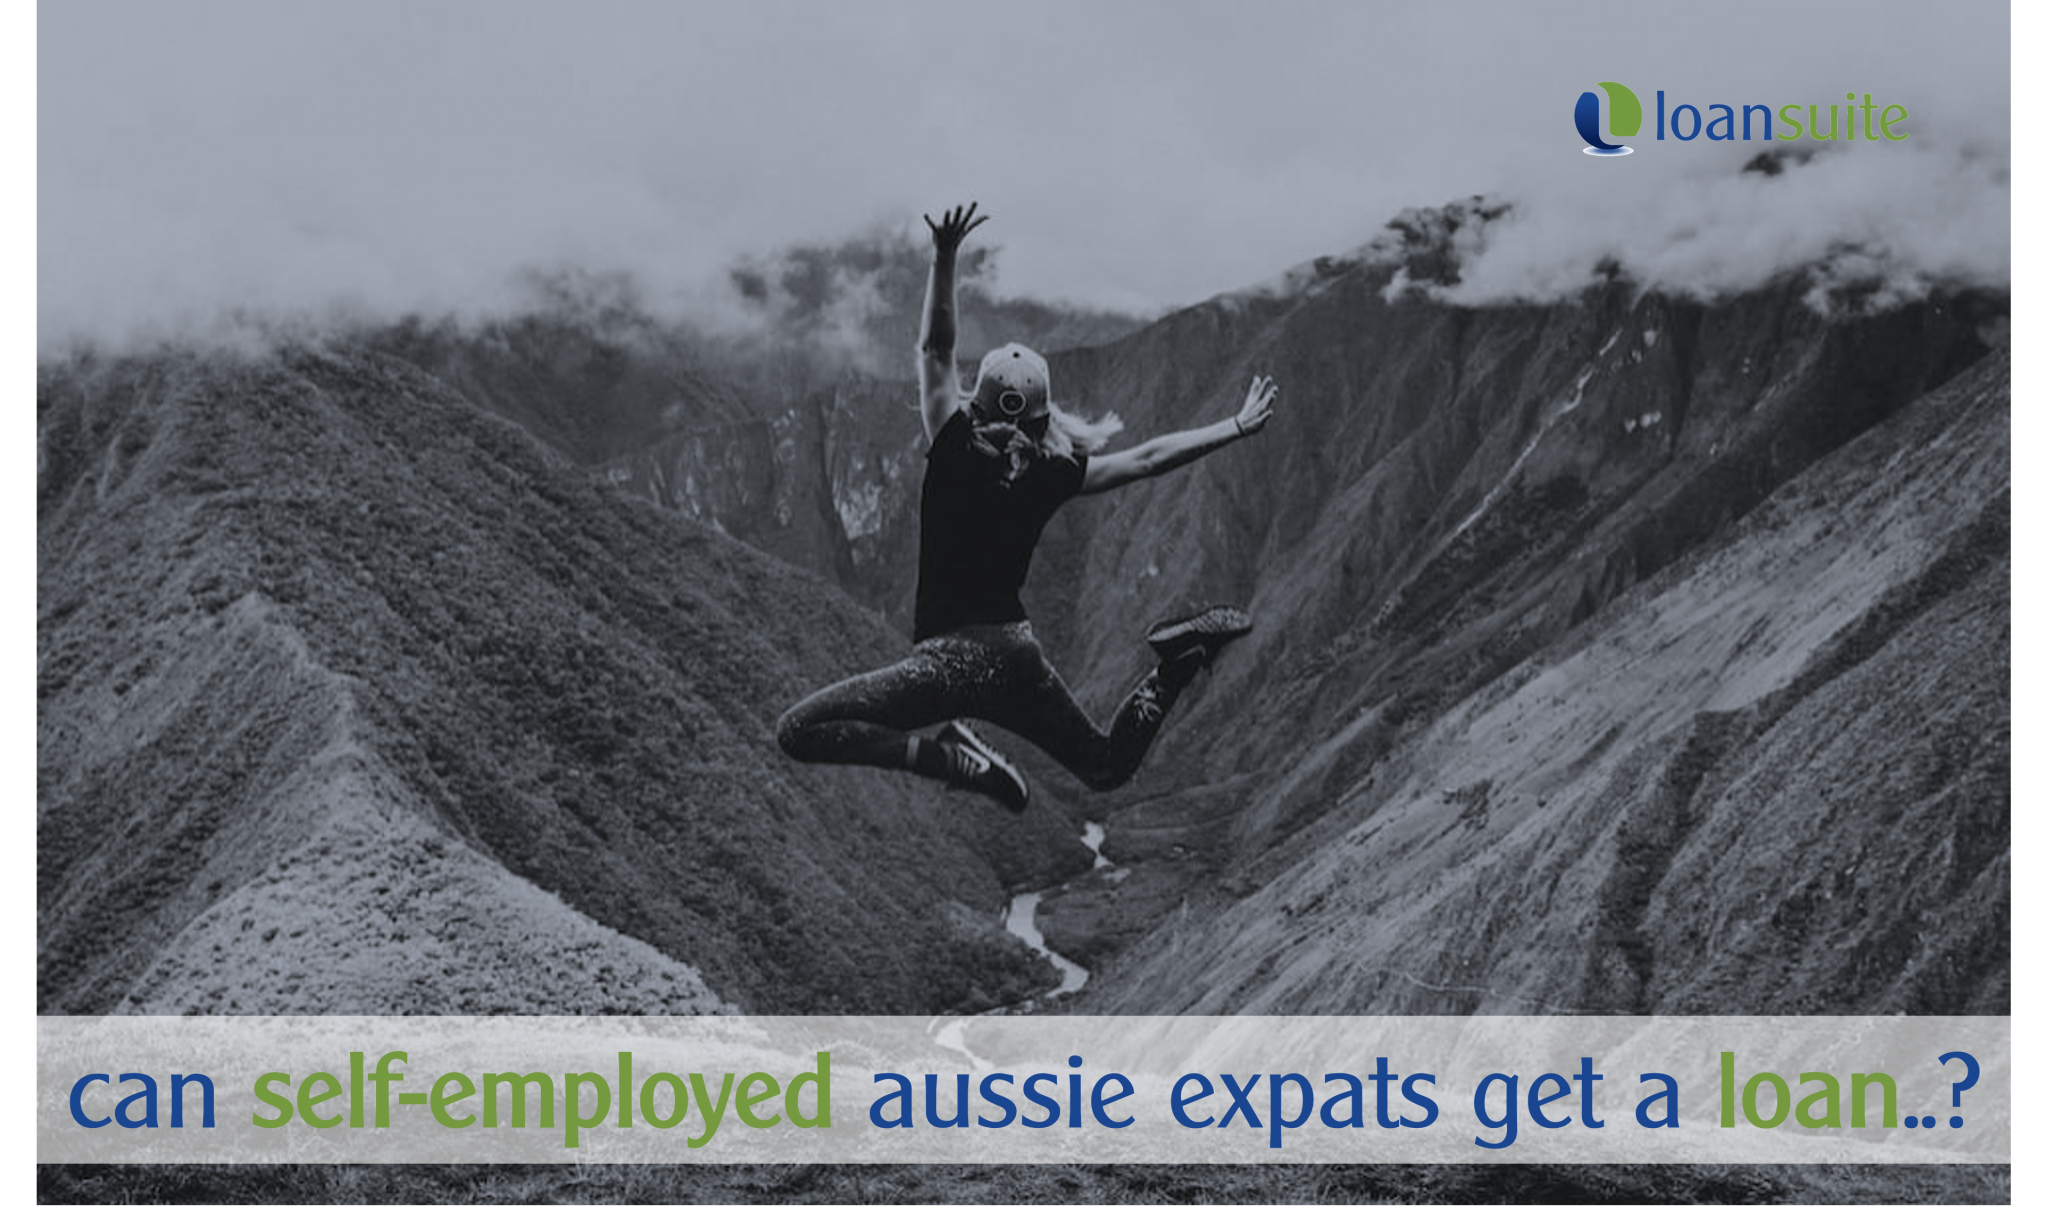 Can Self-Employed Aussie Expats Get a Loan - Loansuite - Mortgage Brokers for Australian Expats